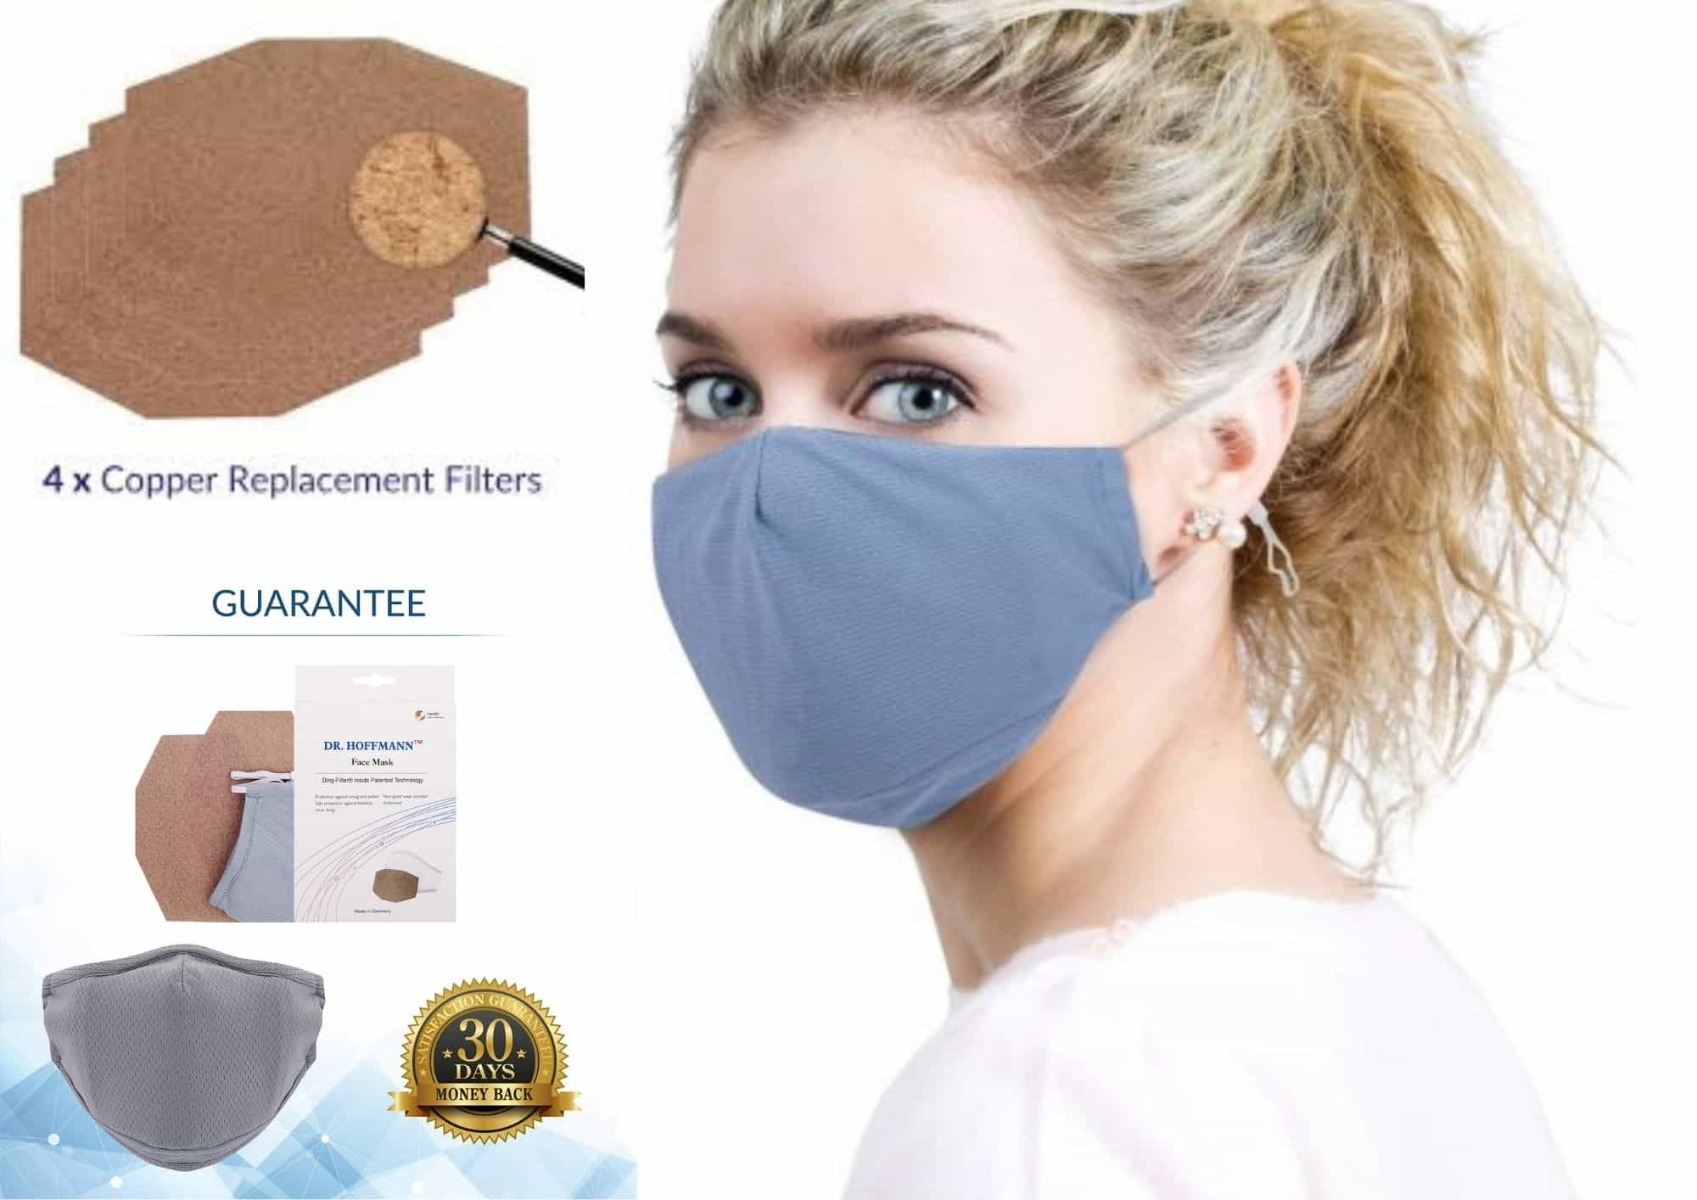 Copper filter facemask by Dr Hoffmann